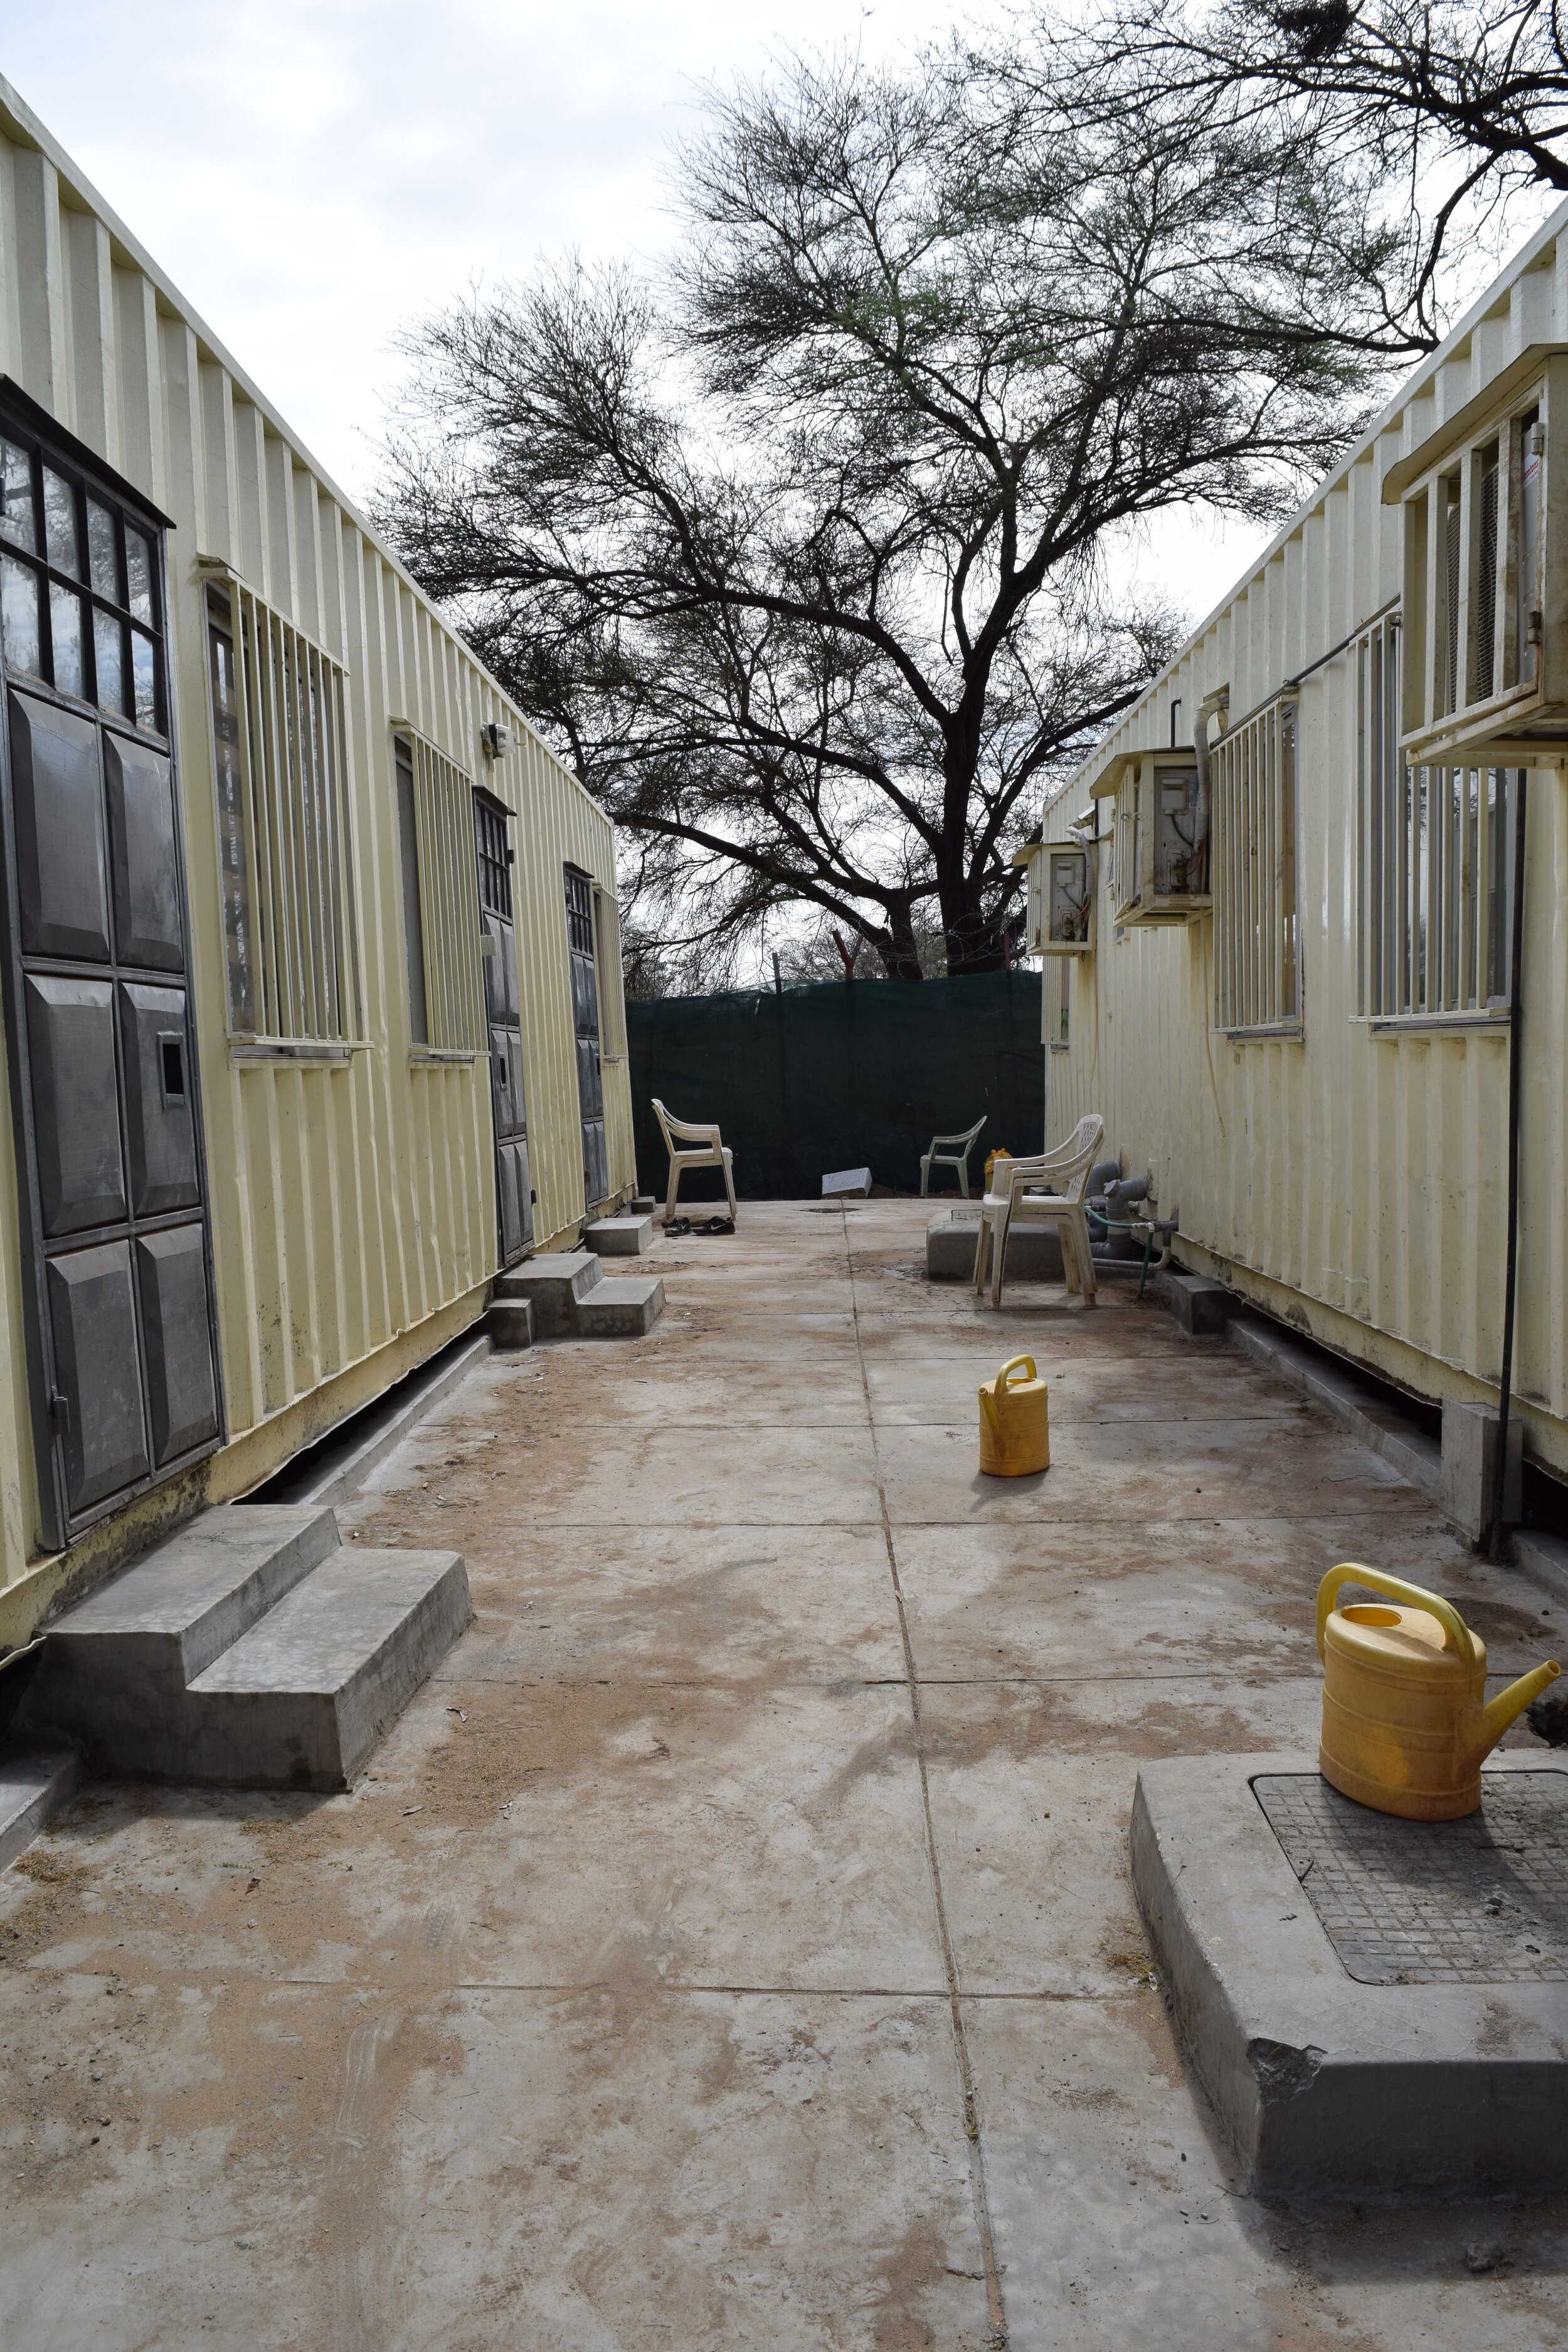 Shipping Containers Staff Housing Kenya.JPG